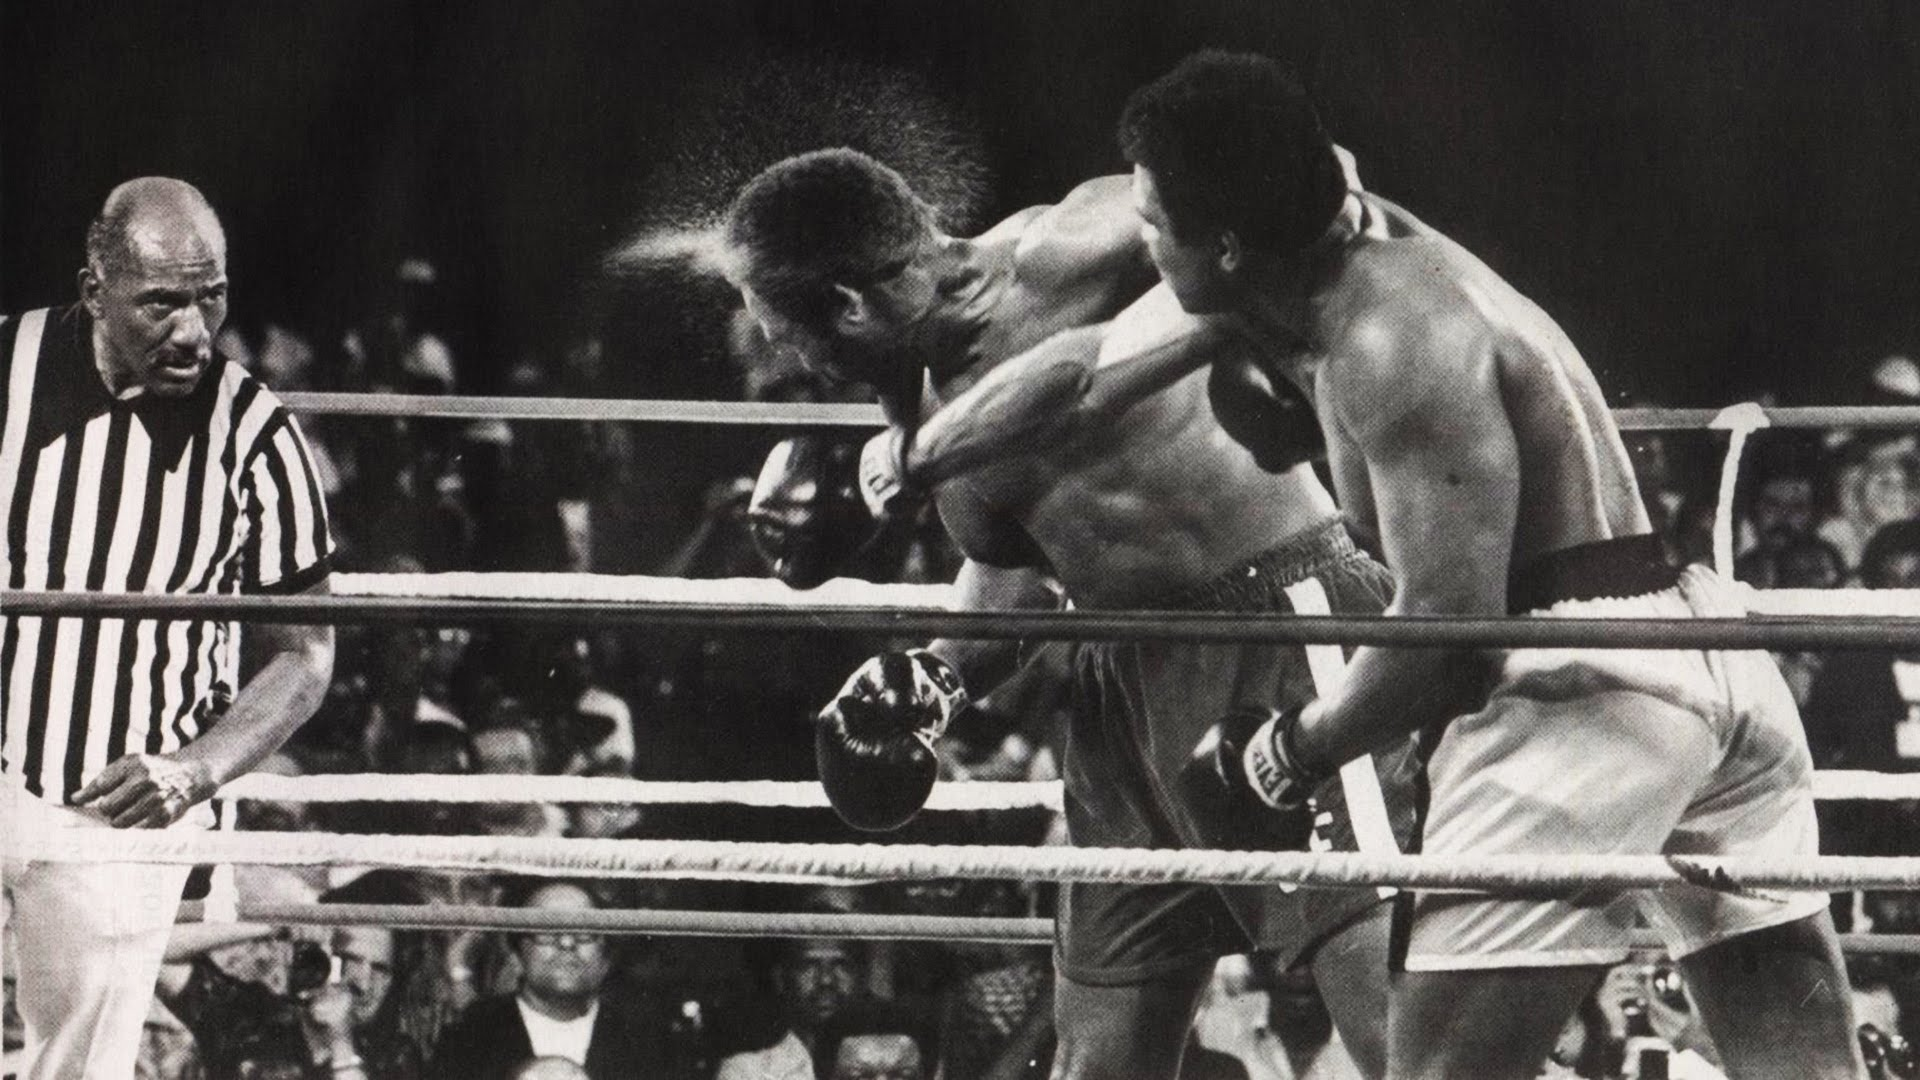 Ali lands a quick right lead on George Foreman in the Rumble in the Jungle